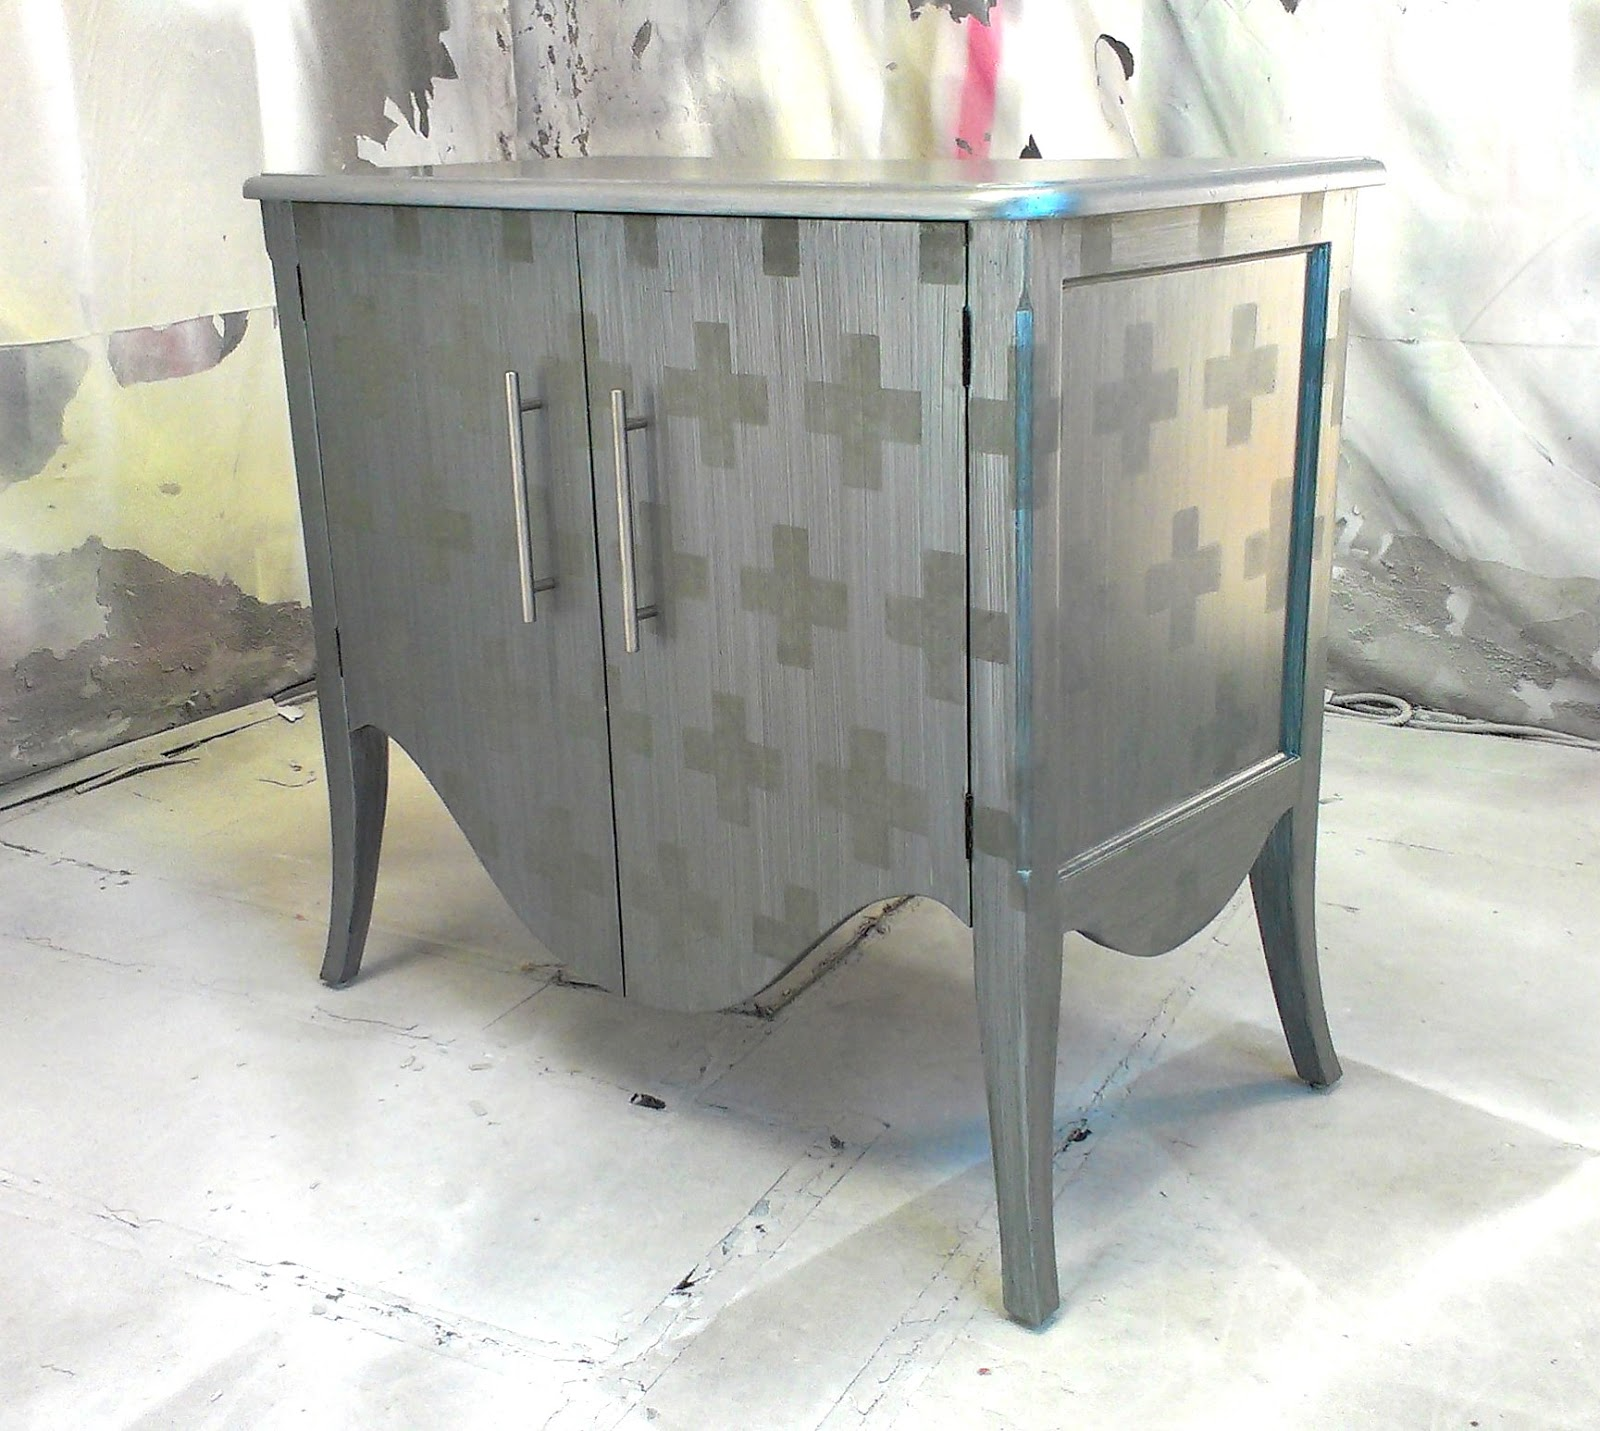 silver painted furniture. Sydney Barton - Painted Furniture Silver